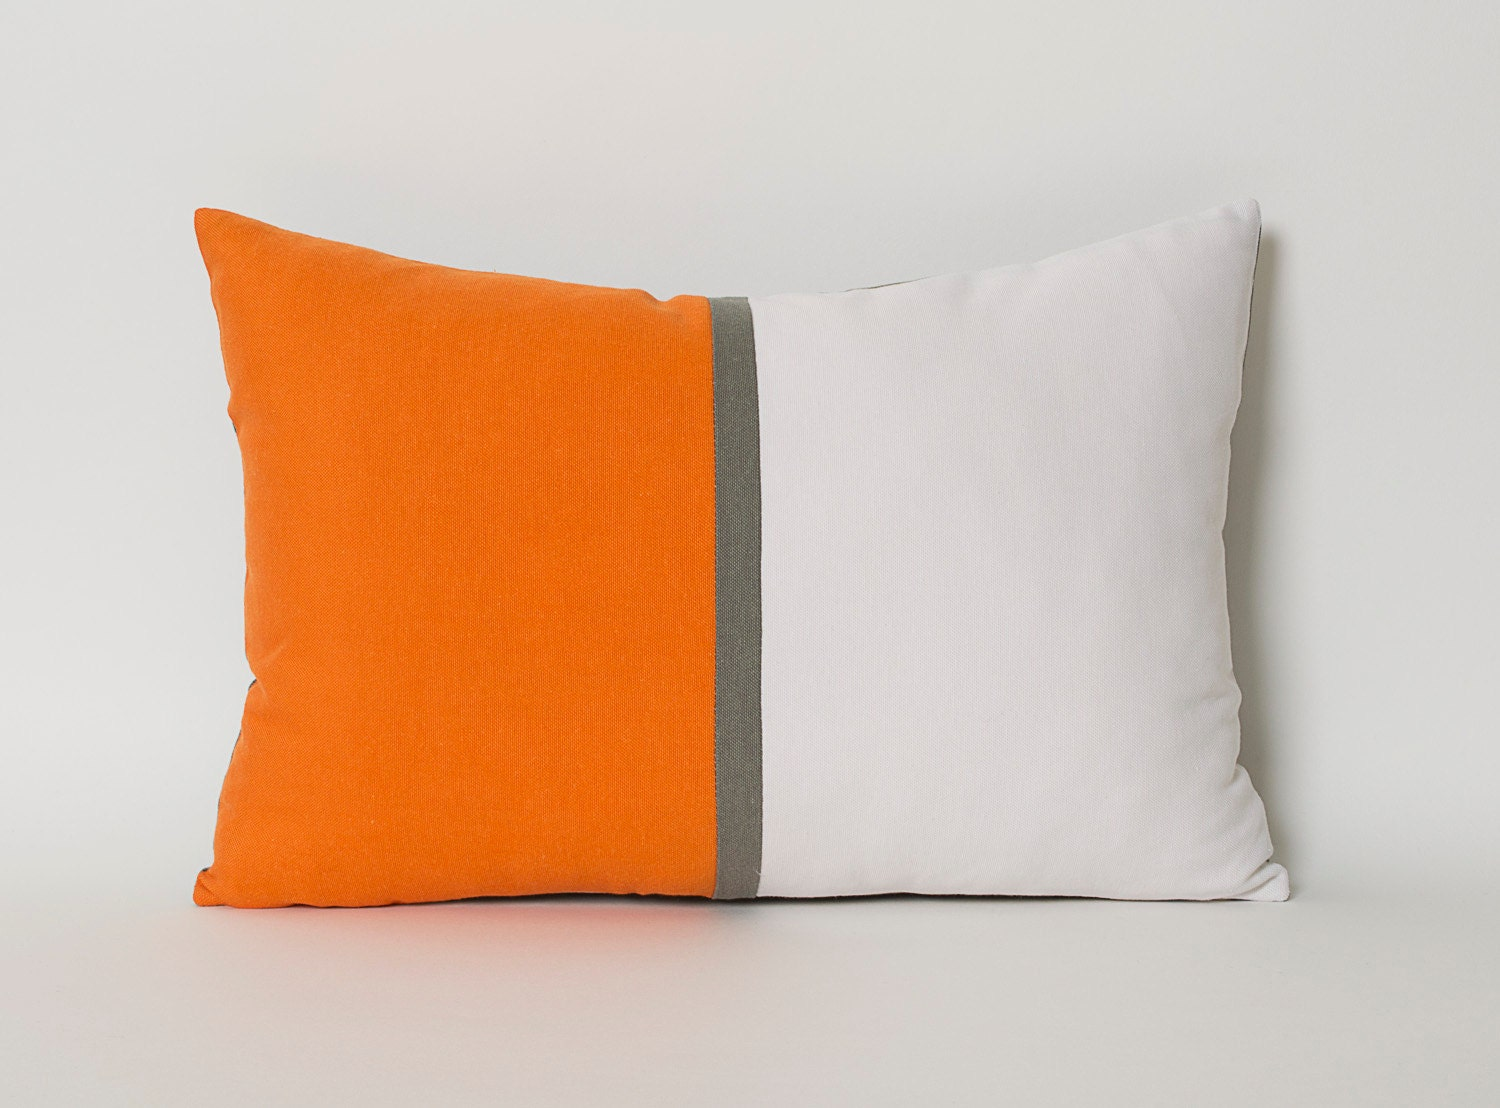 Throw Pillow Covers White : Decorative Throw Pillow Covers Tangerine Orange White Gray